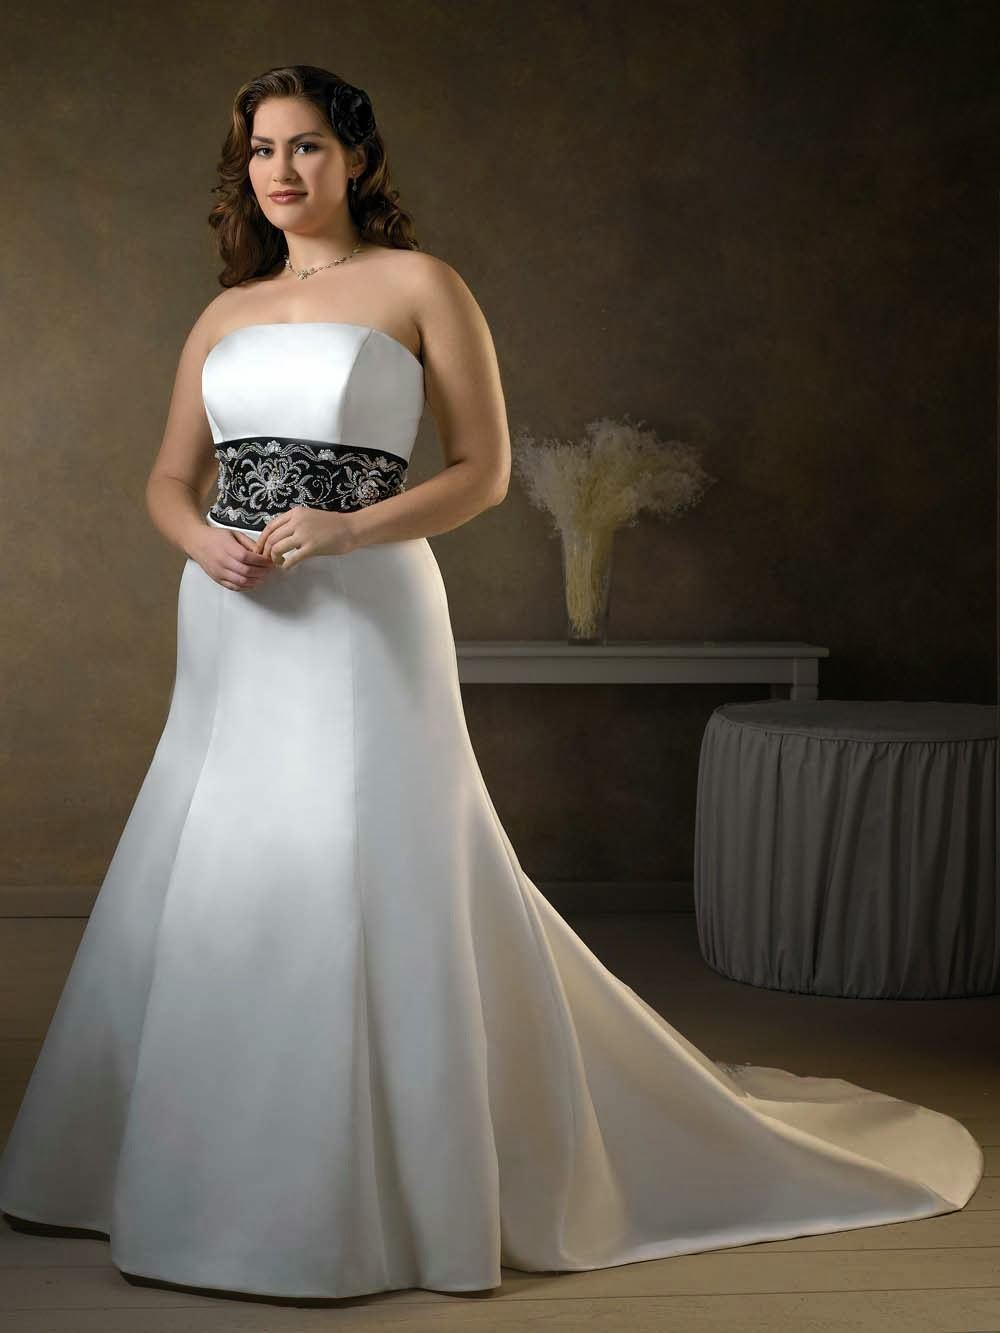 Used wedding gown get high quality plus size dress with for Best wedding dress styles for plus size brides